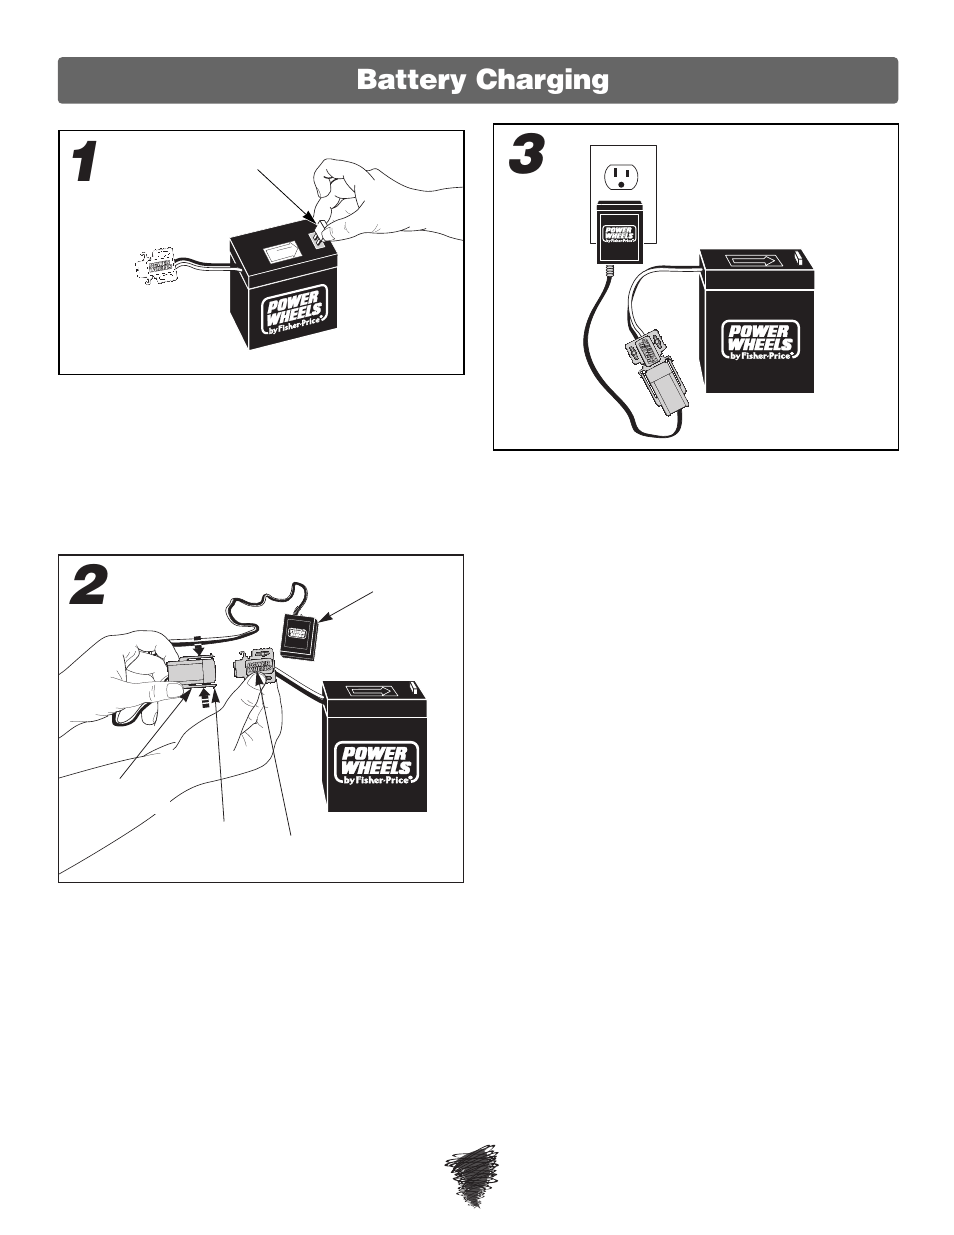 hight resolution of battery charging fisher price wild thing 74180 user manual page 8 28